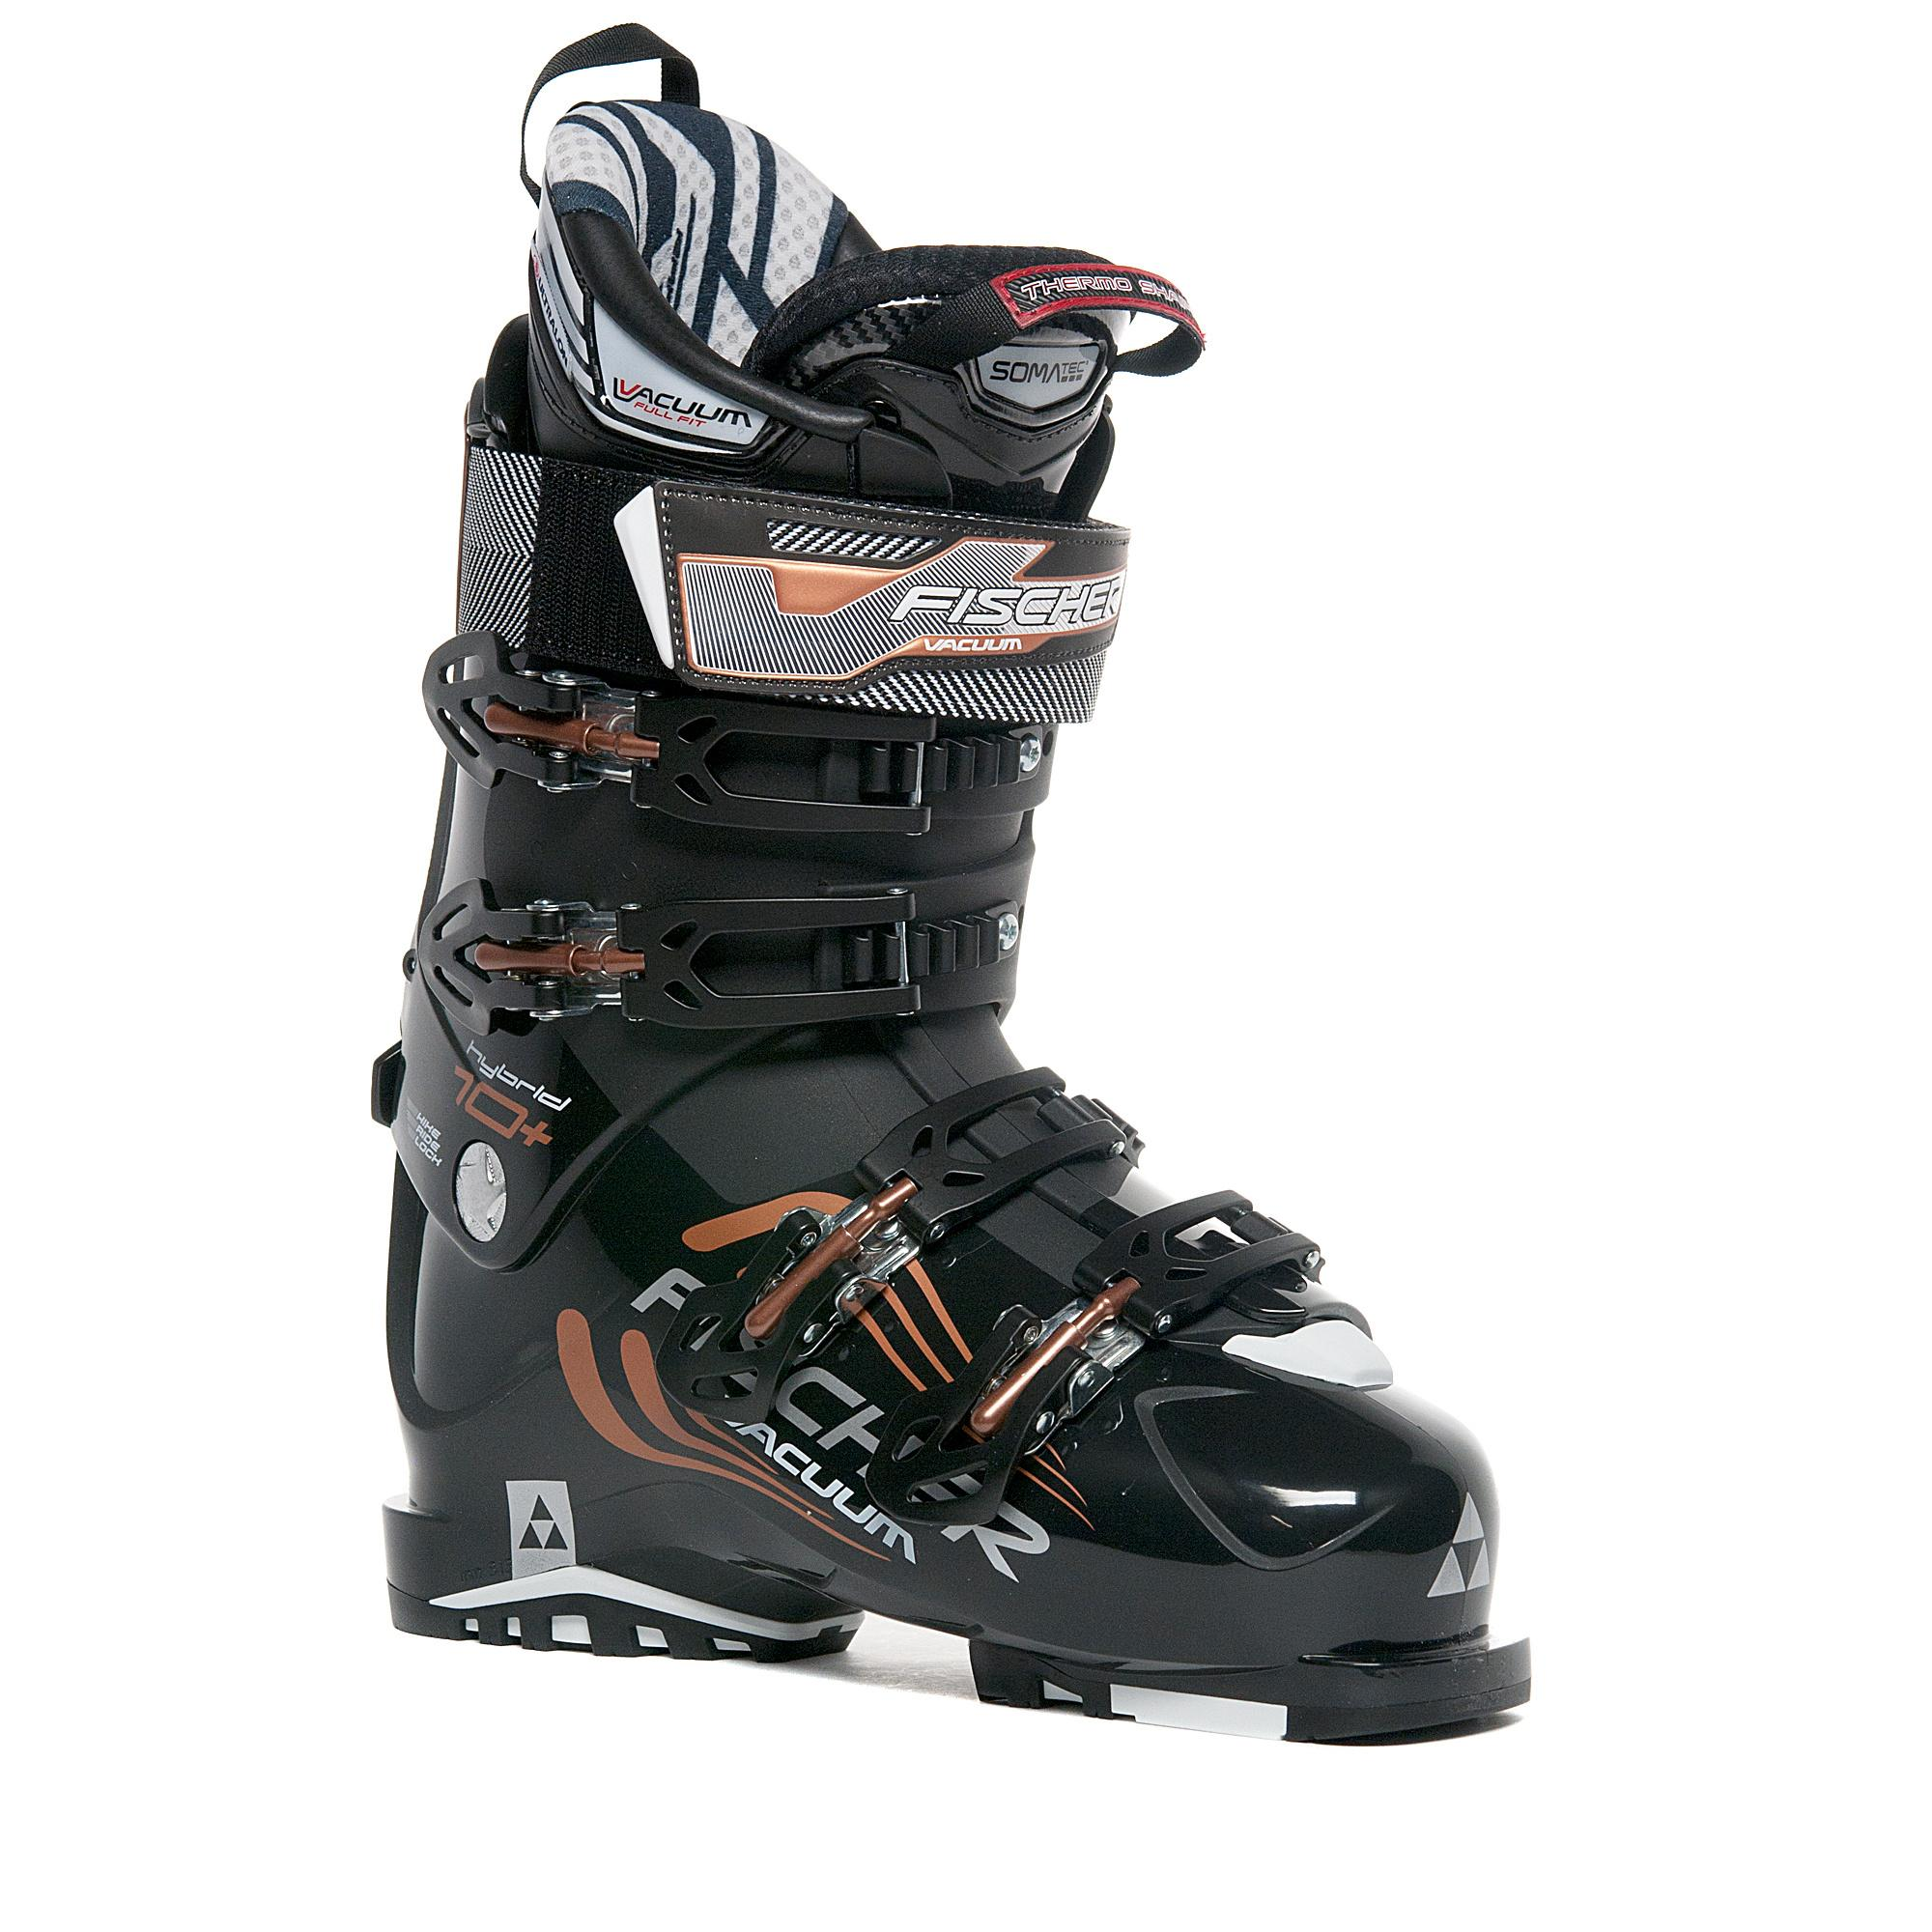 Fischer Sports Women's Hybrid 10+ Vacuum Ski Boot, Black